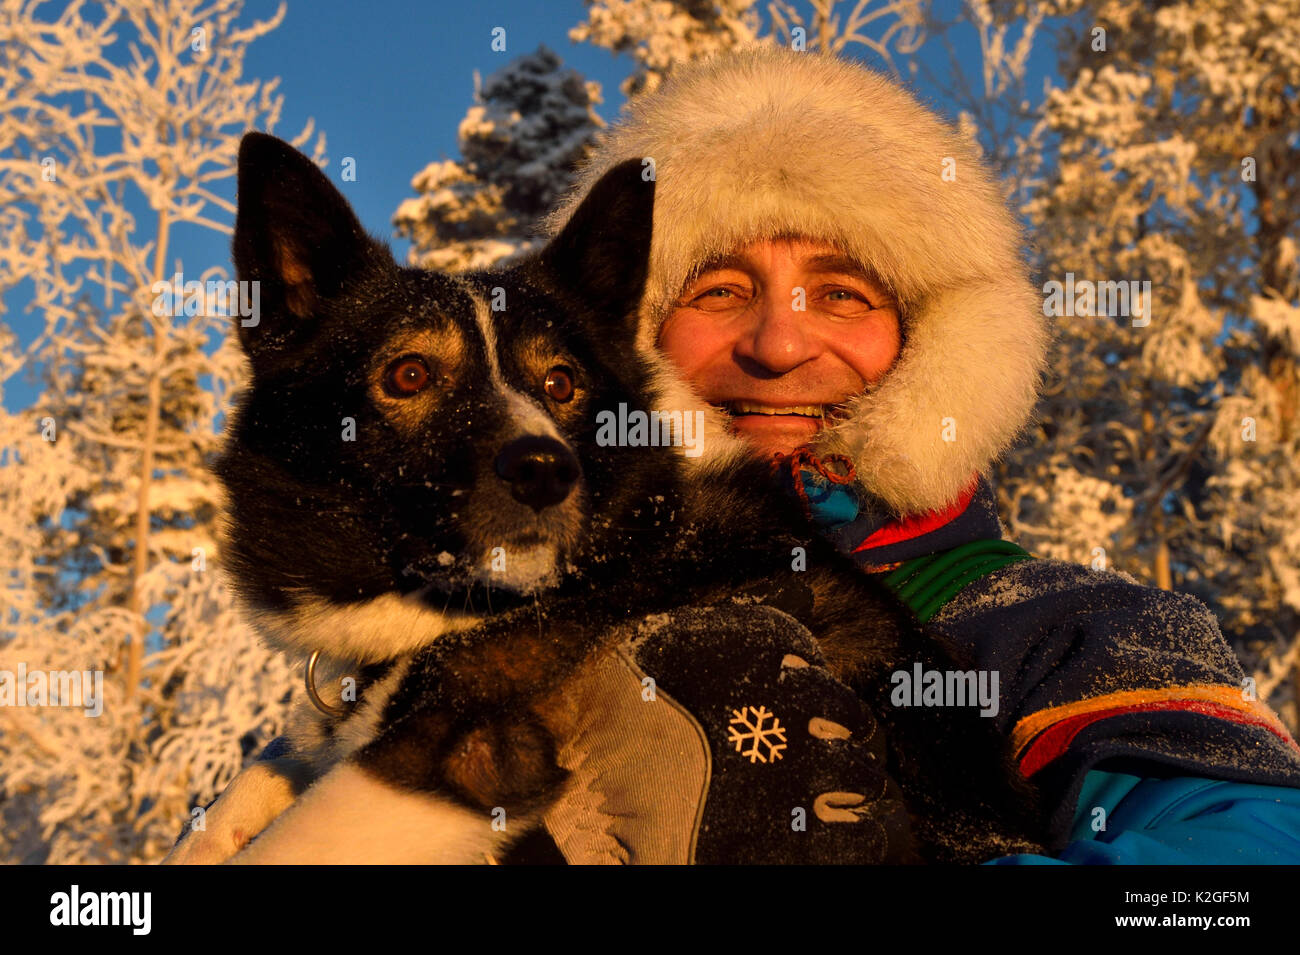 Nils-Torbjorn Nutti, owner and operator at Nutti Sami Siida, with domestic husky dog, during snowmobile trip into the wilderness, Jukkasjarvi, Lapland, Laponia, Norrbotten county, Sweden Model released. - Stock Image